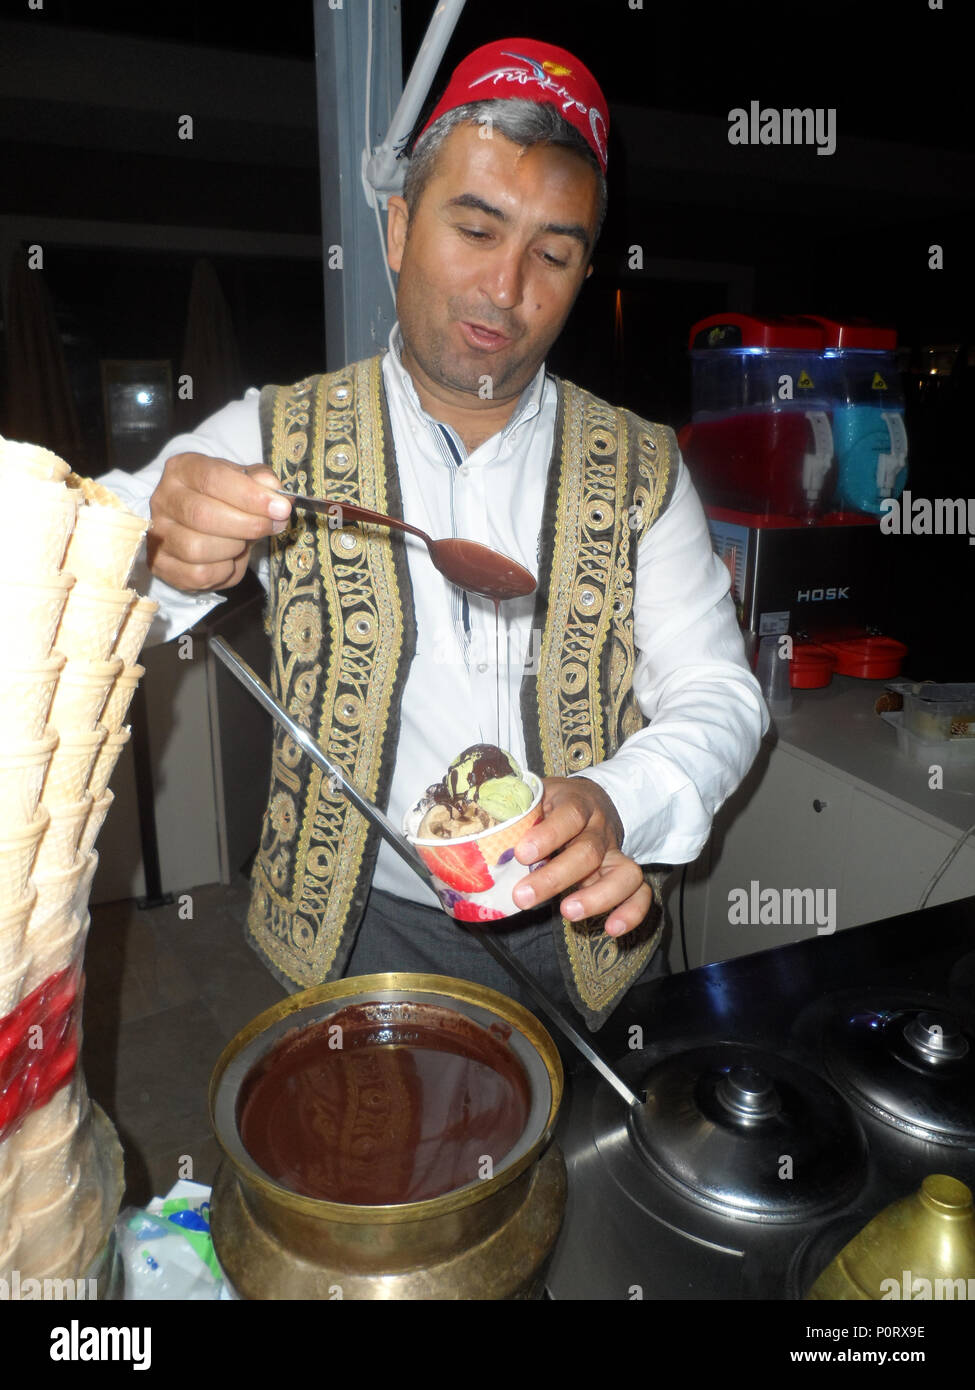 An Ice cream vendor wearing traditional Turkish yelek, waistcoat or vest, while pouring melted chocolate over the ice cream. - Stock Image